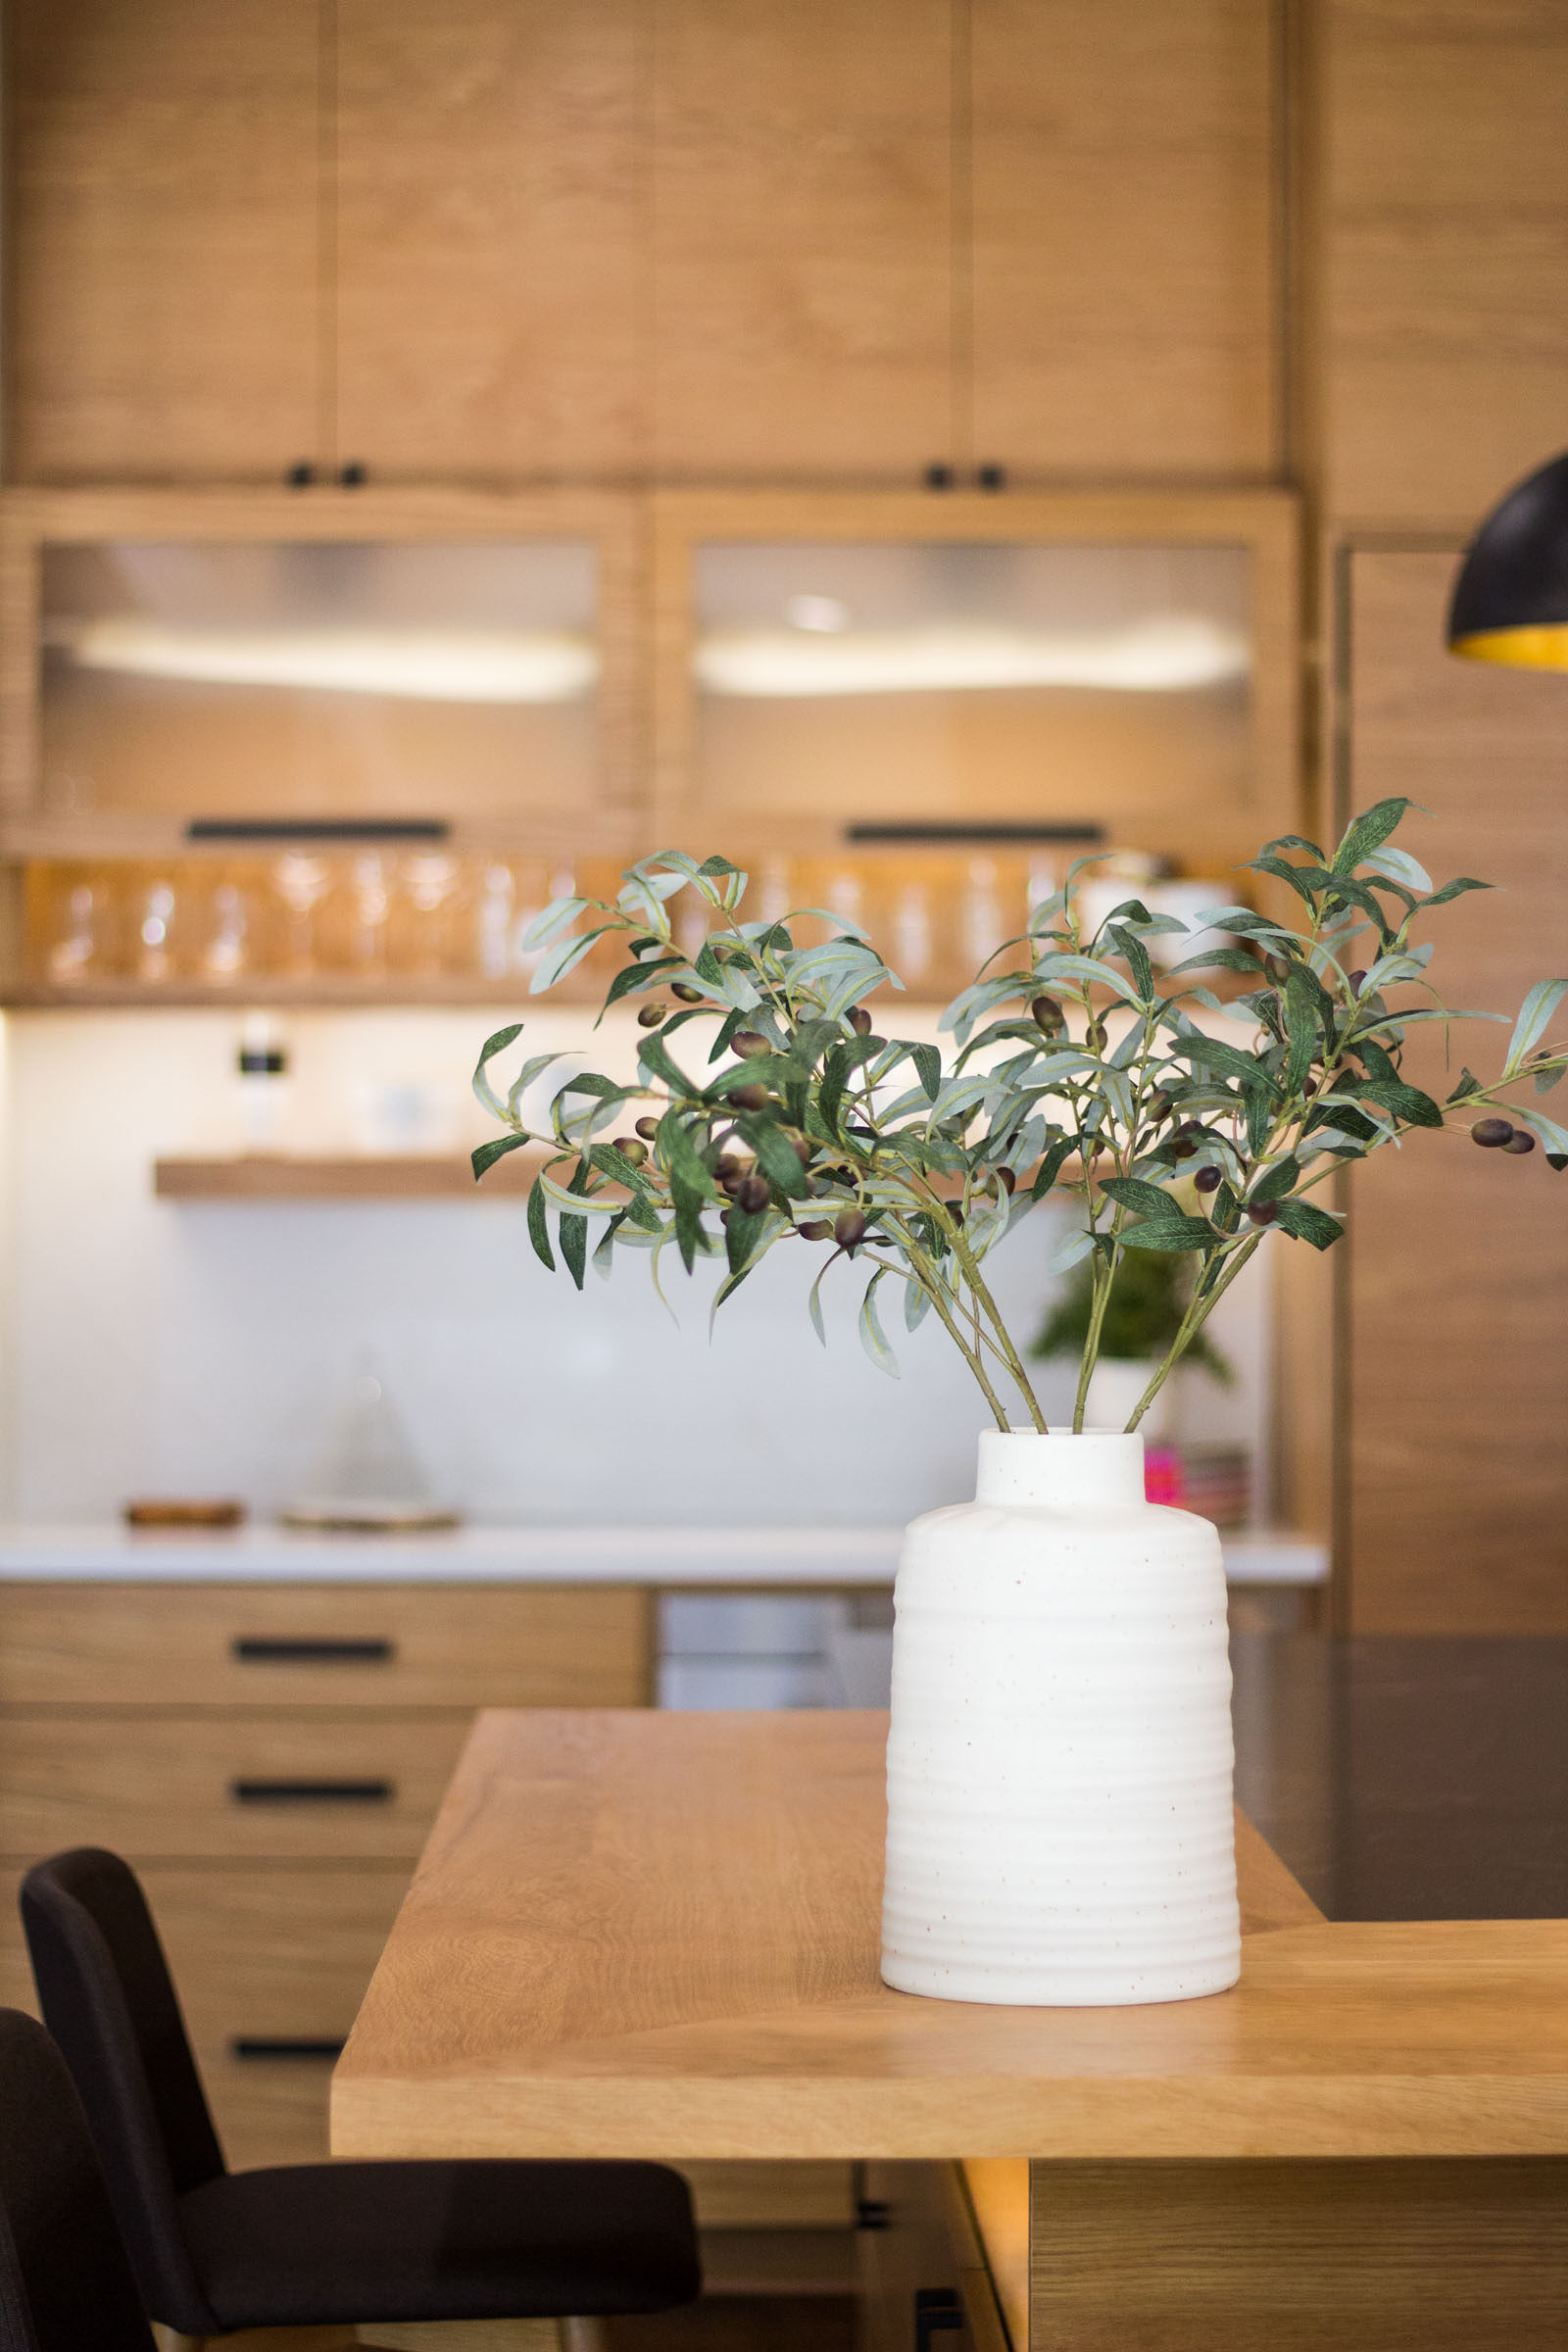 WHite ceramic vase with greenery on top of raw wood counter slab